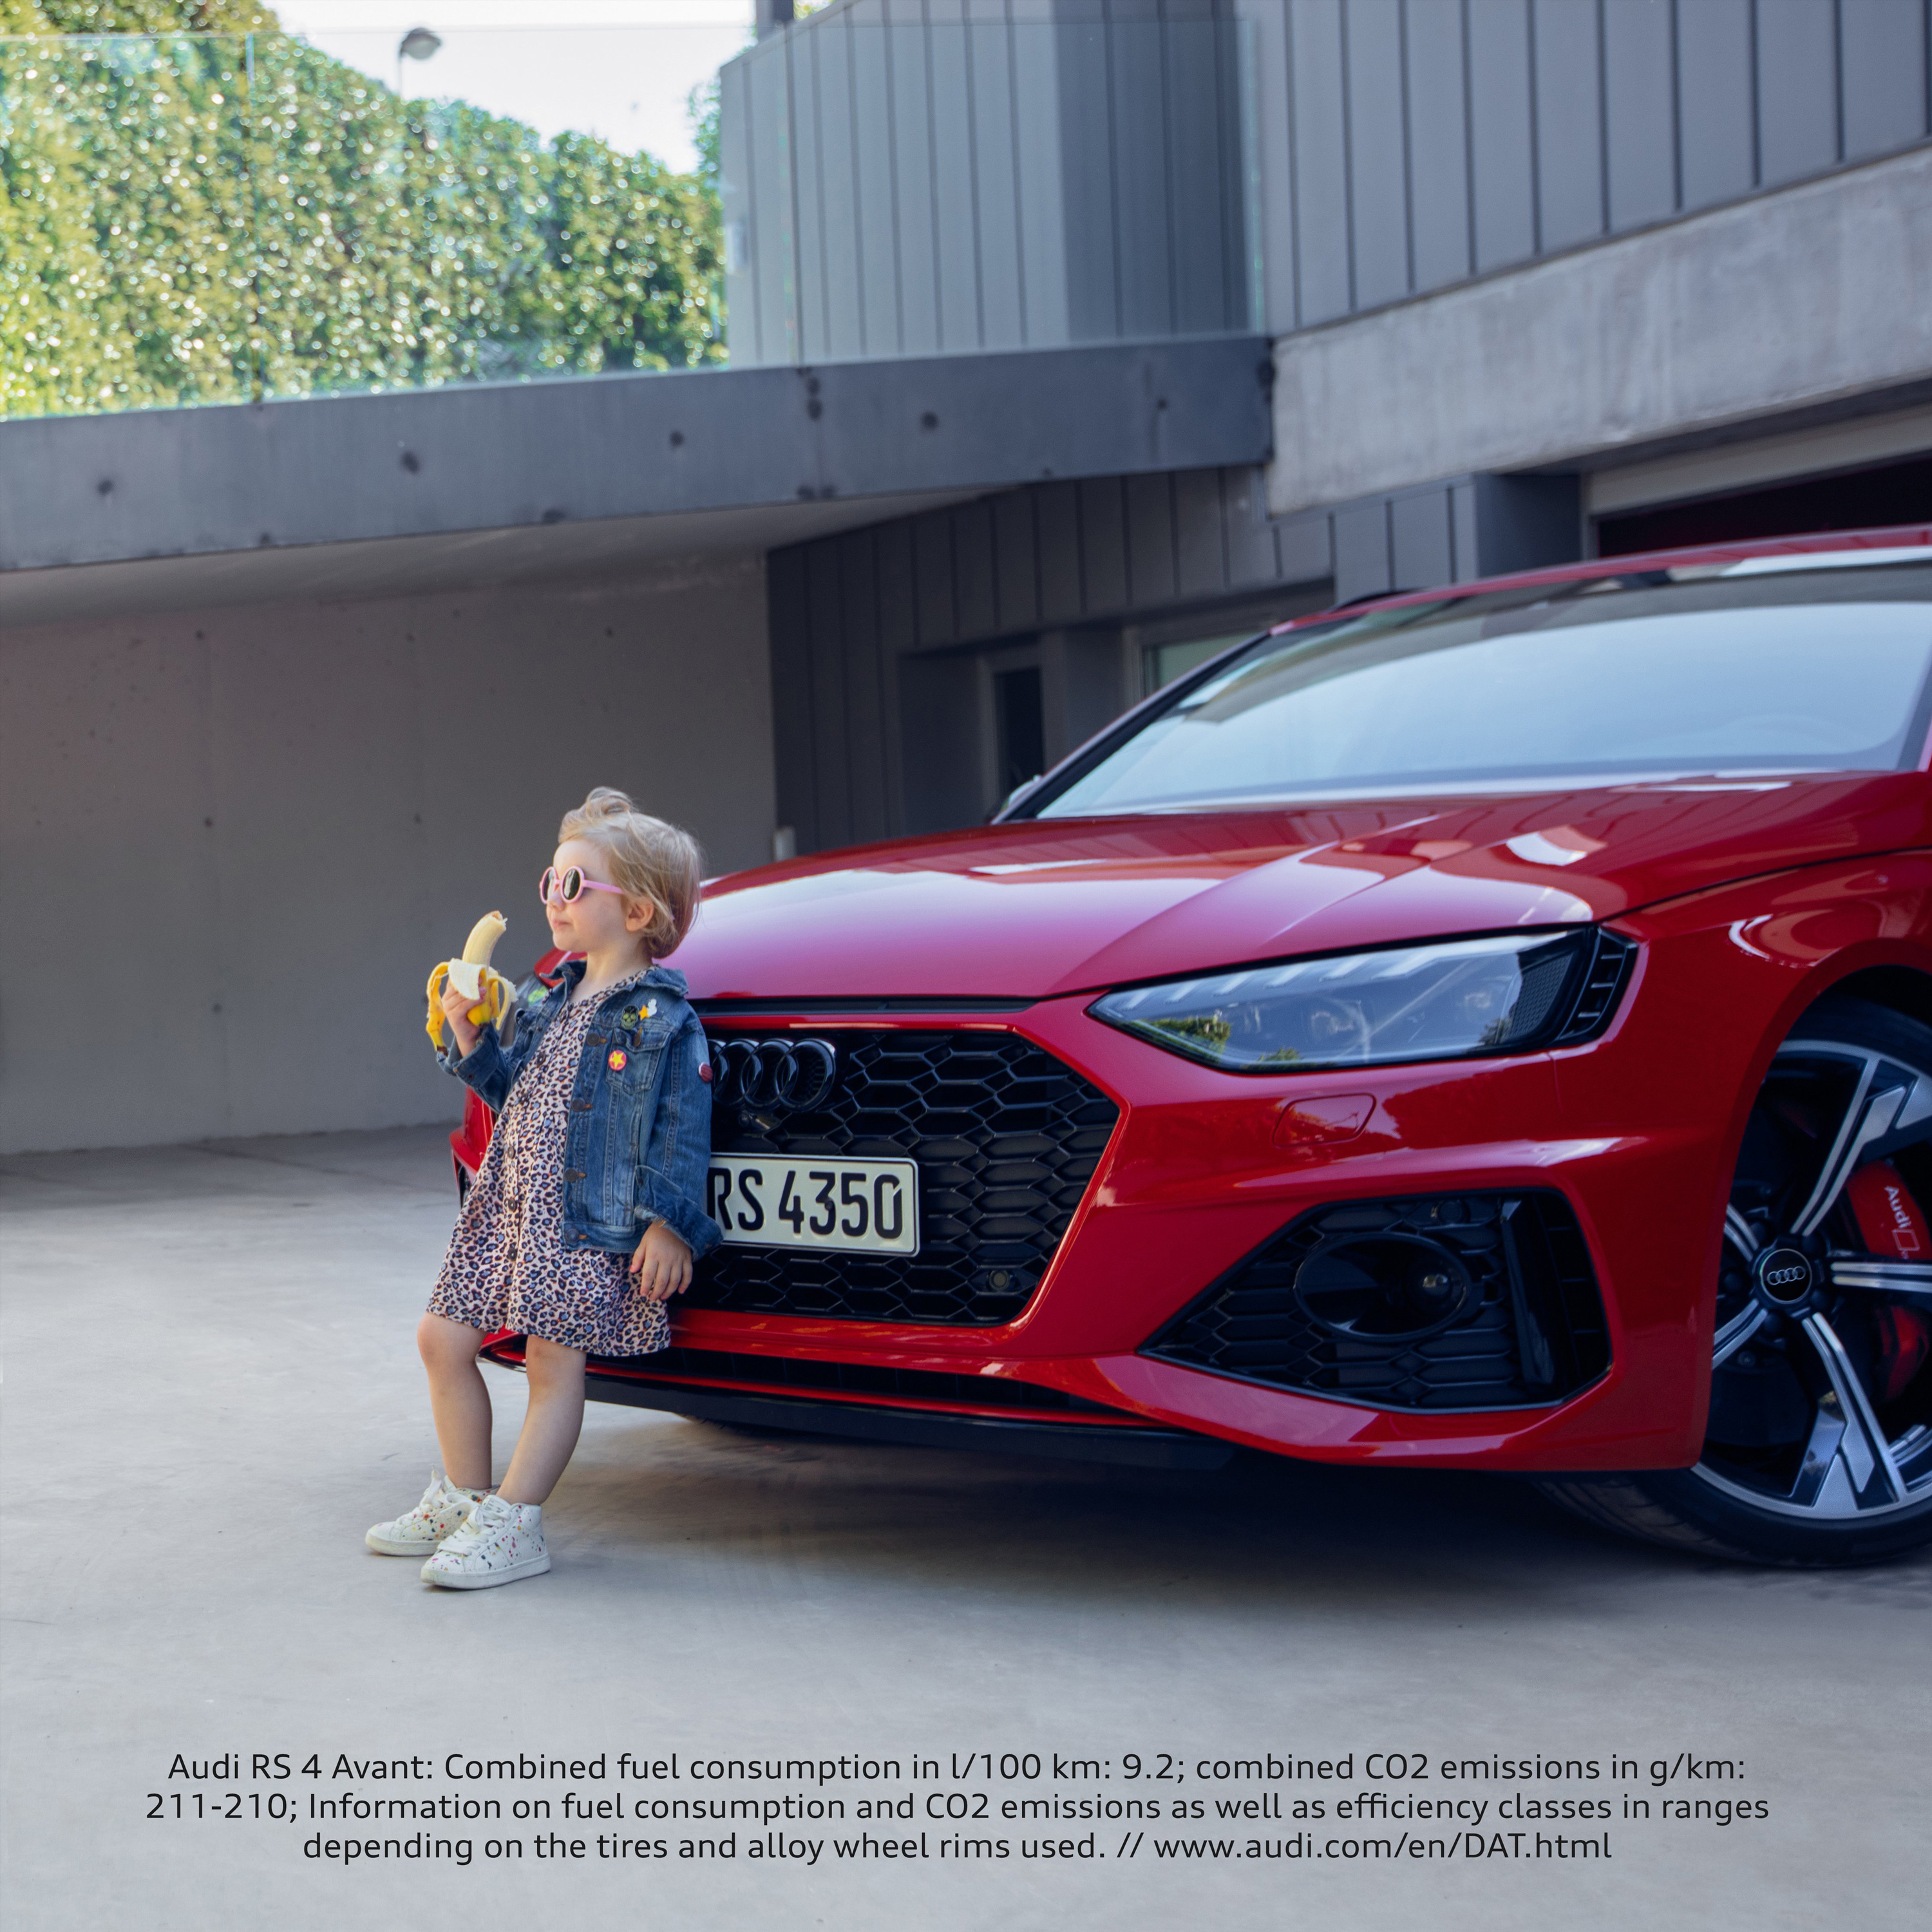 Audi pulls 'insensitive' ad featuring girl eating banana in front of car